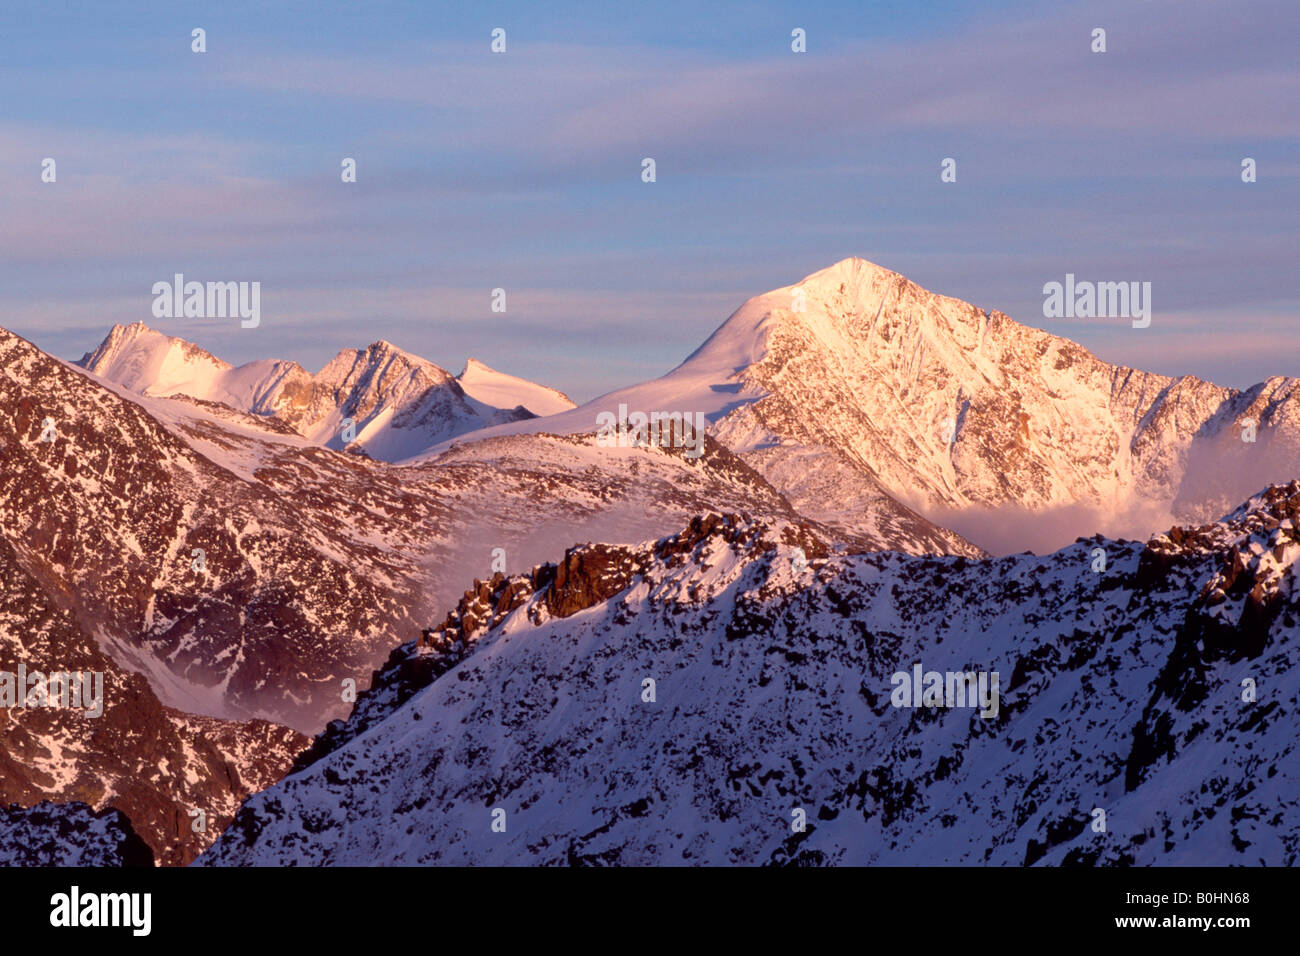 Mt. Finailspitze, Mt. Finailkoepfe and Mt. Similaun viewed from Grawand, Schnalstal, South Tyrol, Italy, Europe - Stock Image